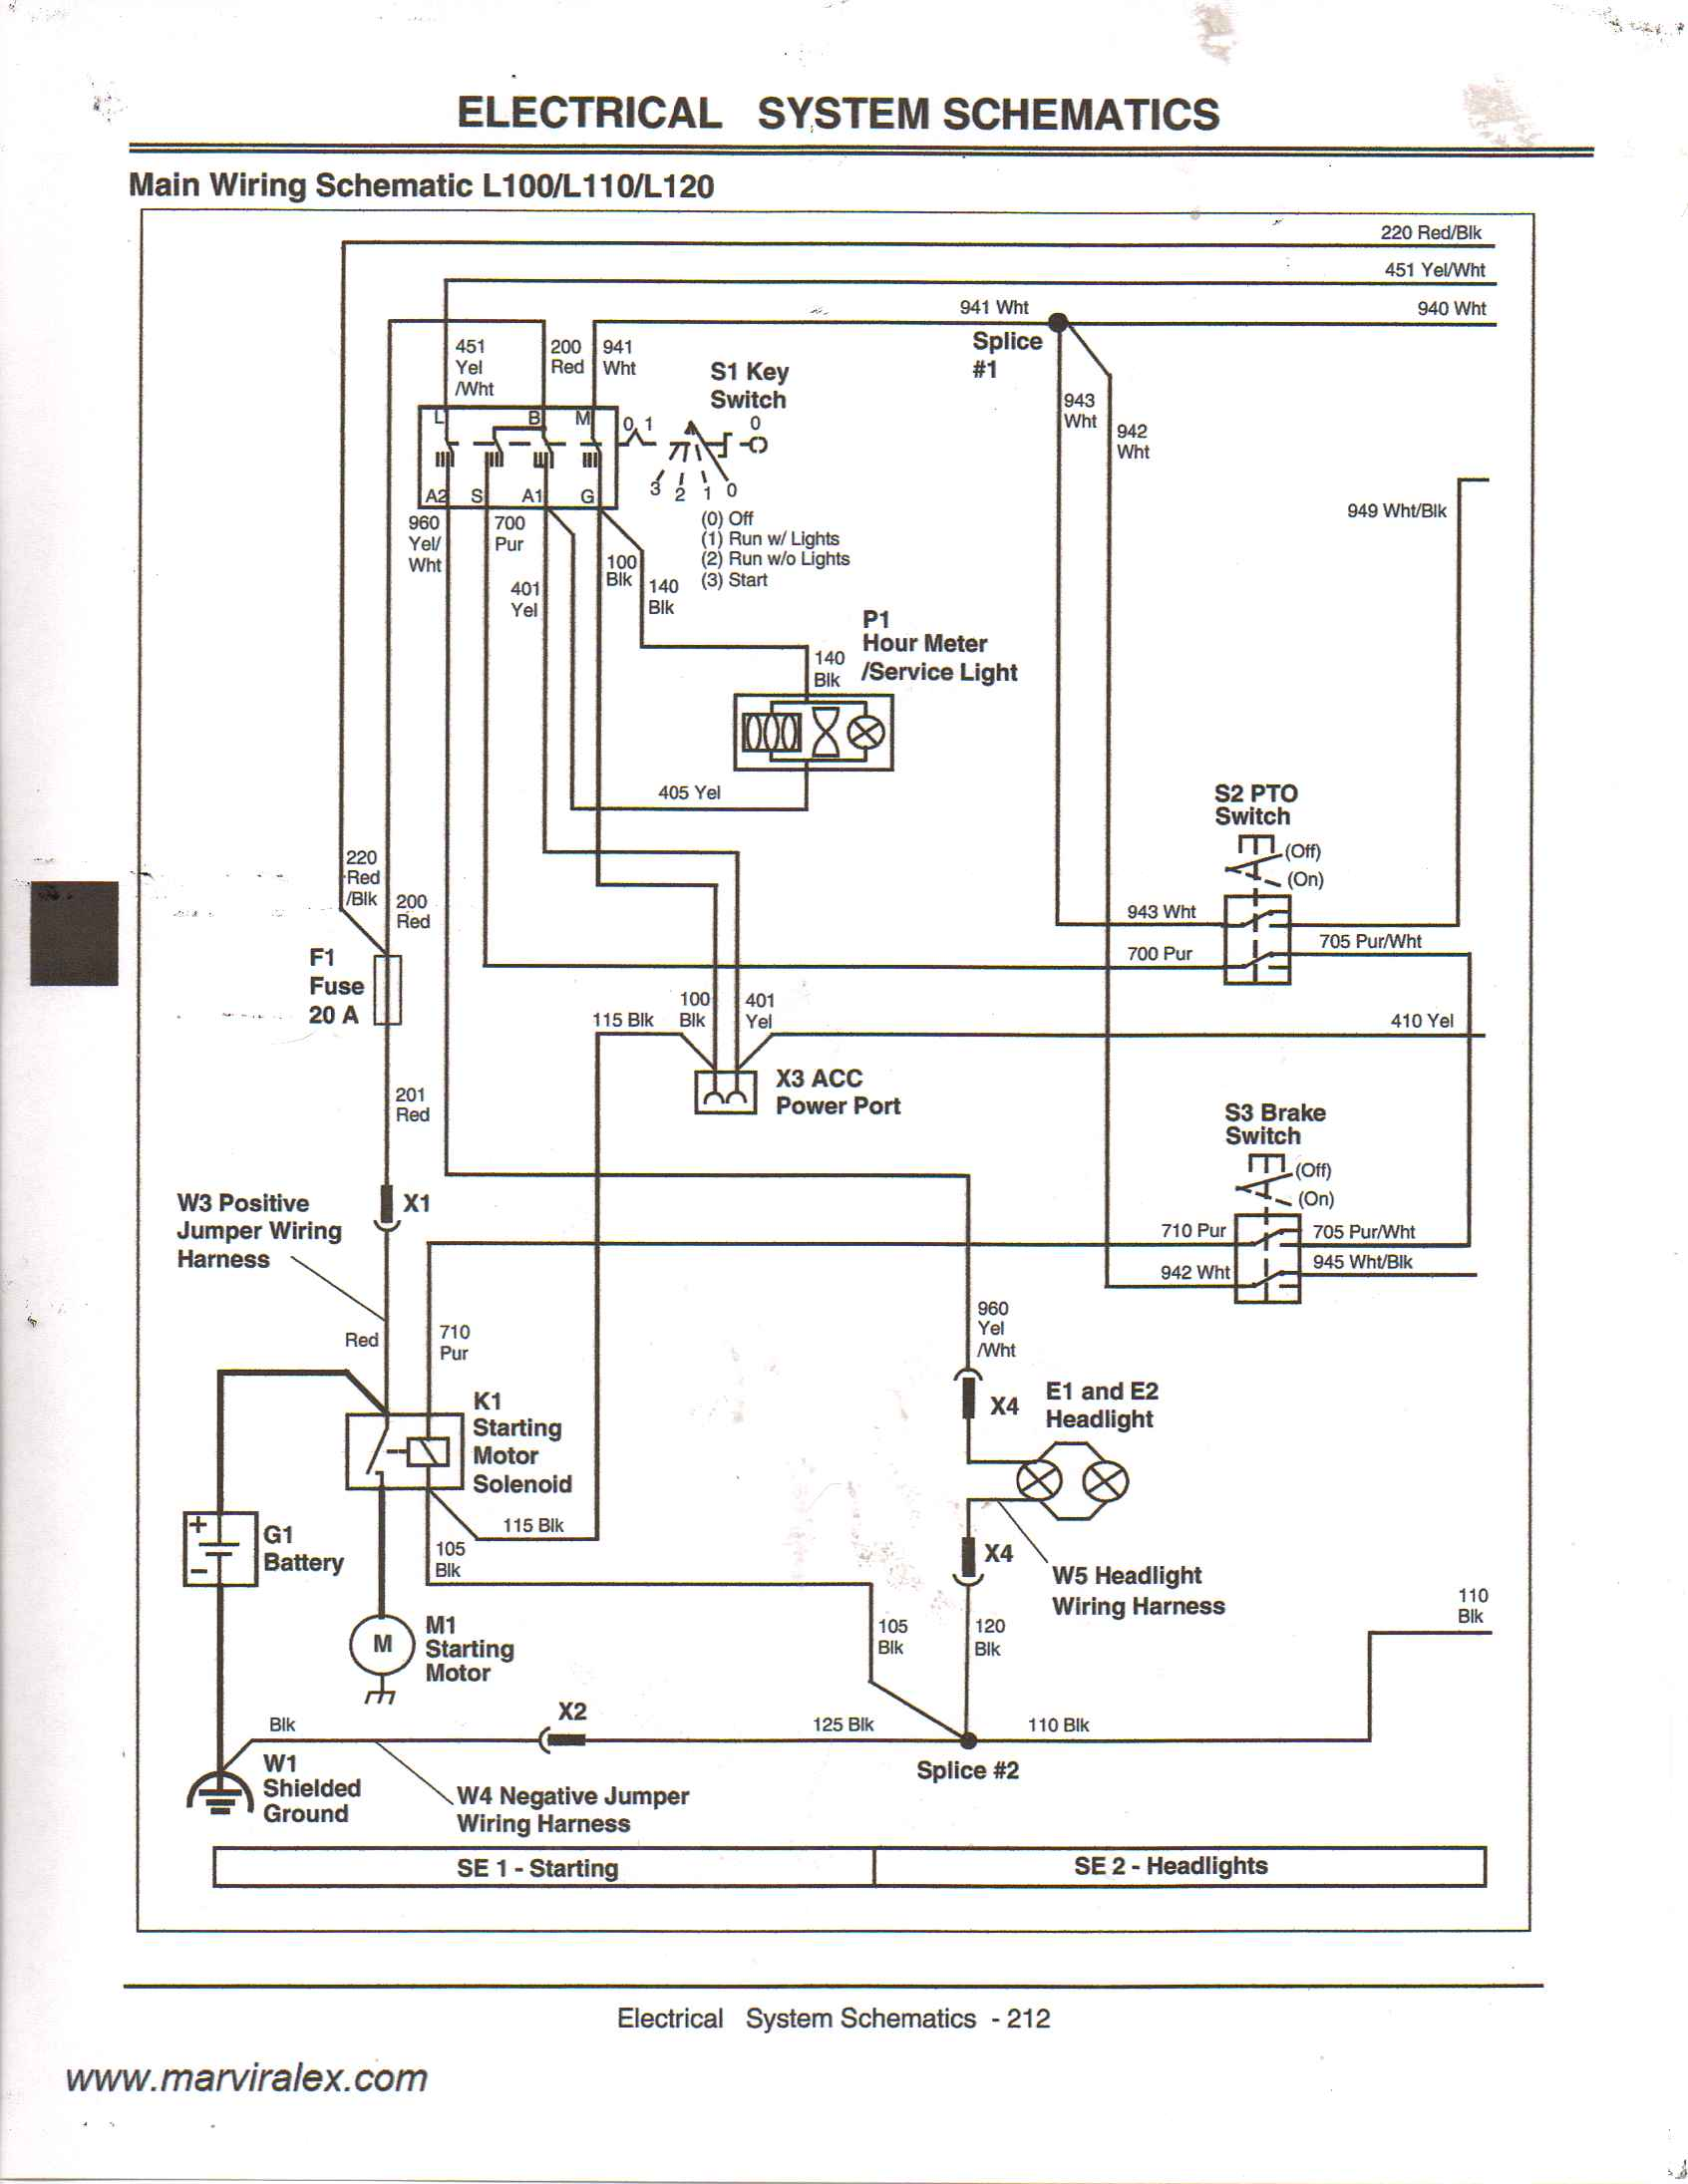 Voltage Regulator Wiring Diagram L110 Will Be A Thing 4 Wire 1952 John Deere B Get Free Image About 12v Schematic With Generator